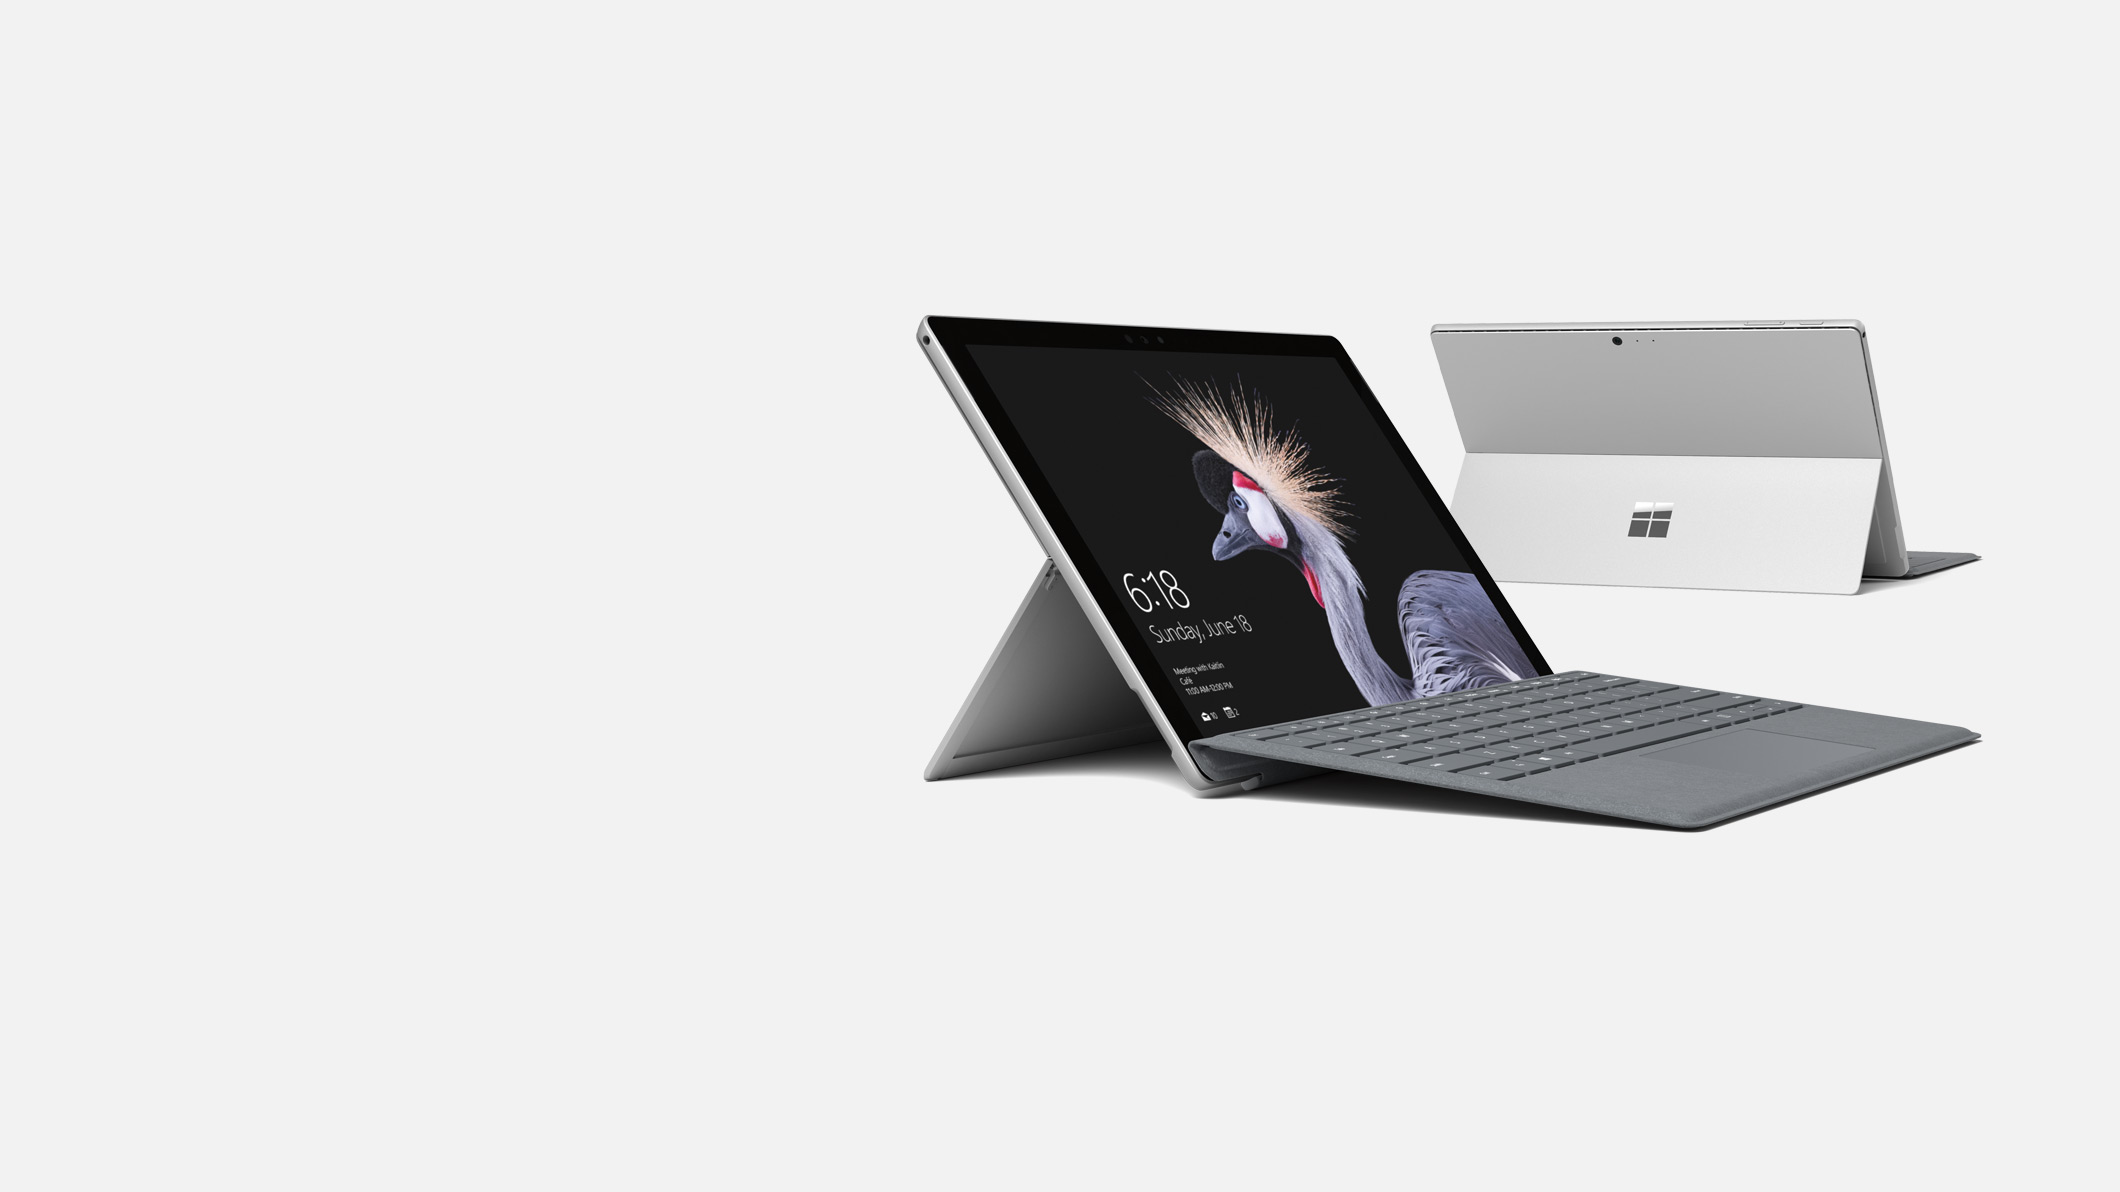 surface pro 5th gen with 4g